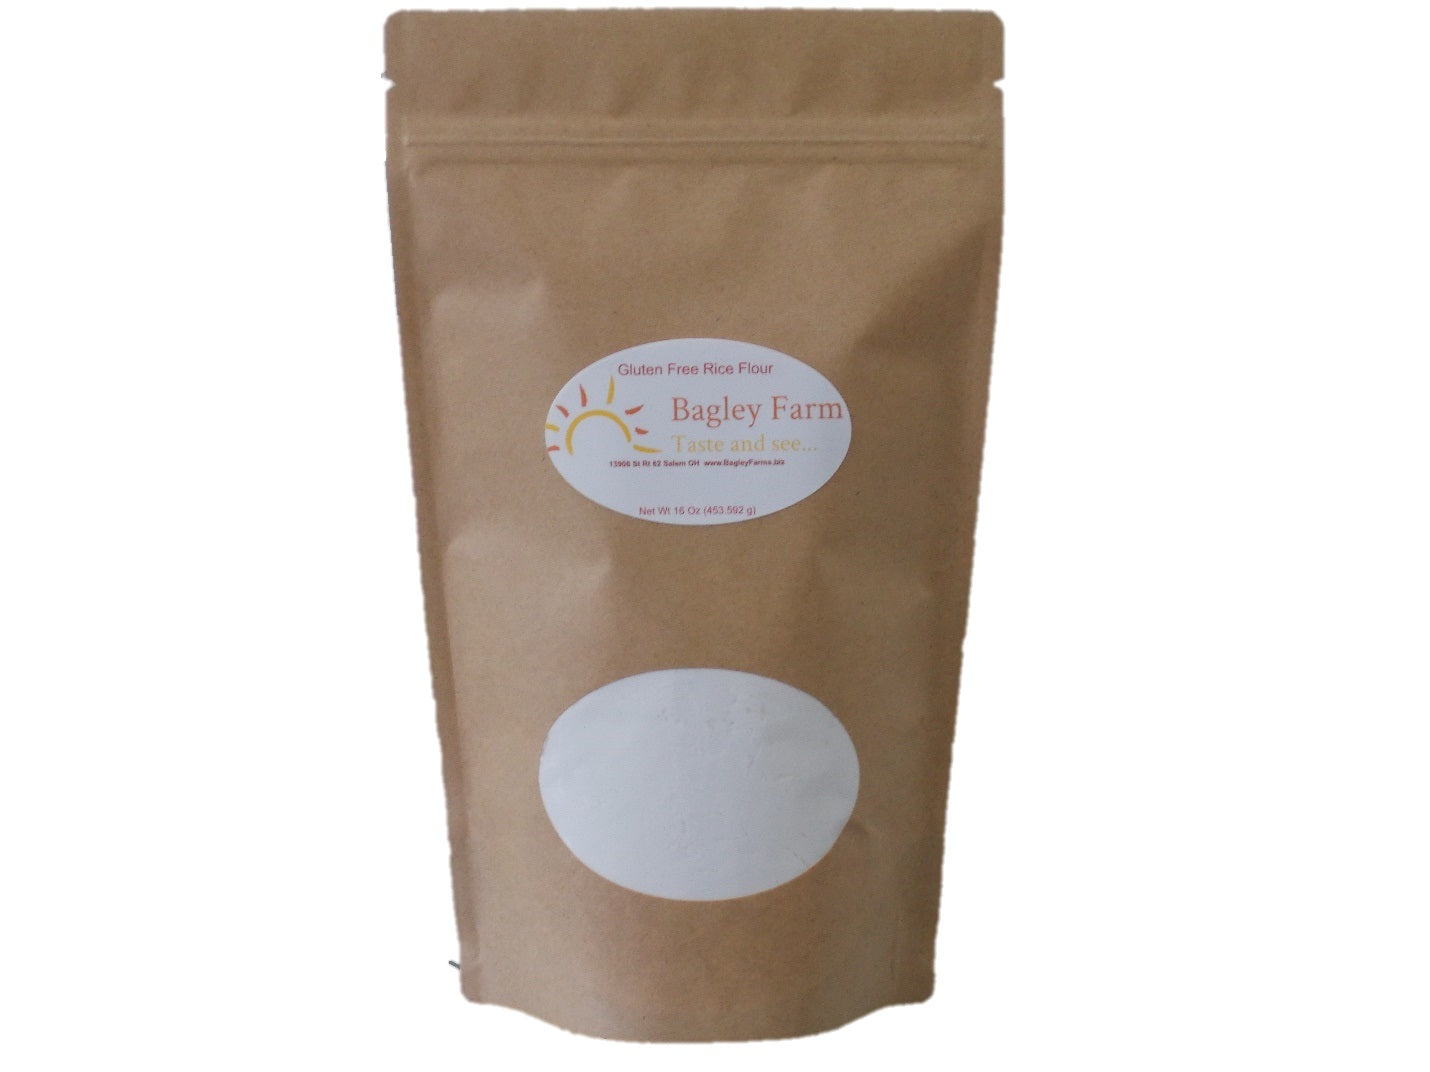 White Rice Flour 16 oz